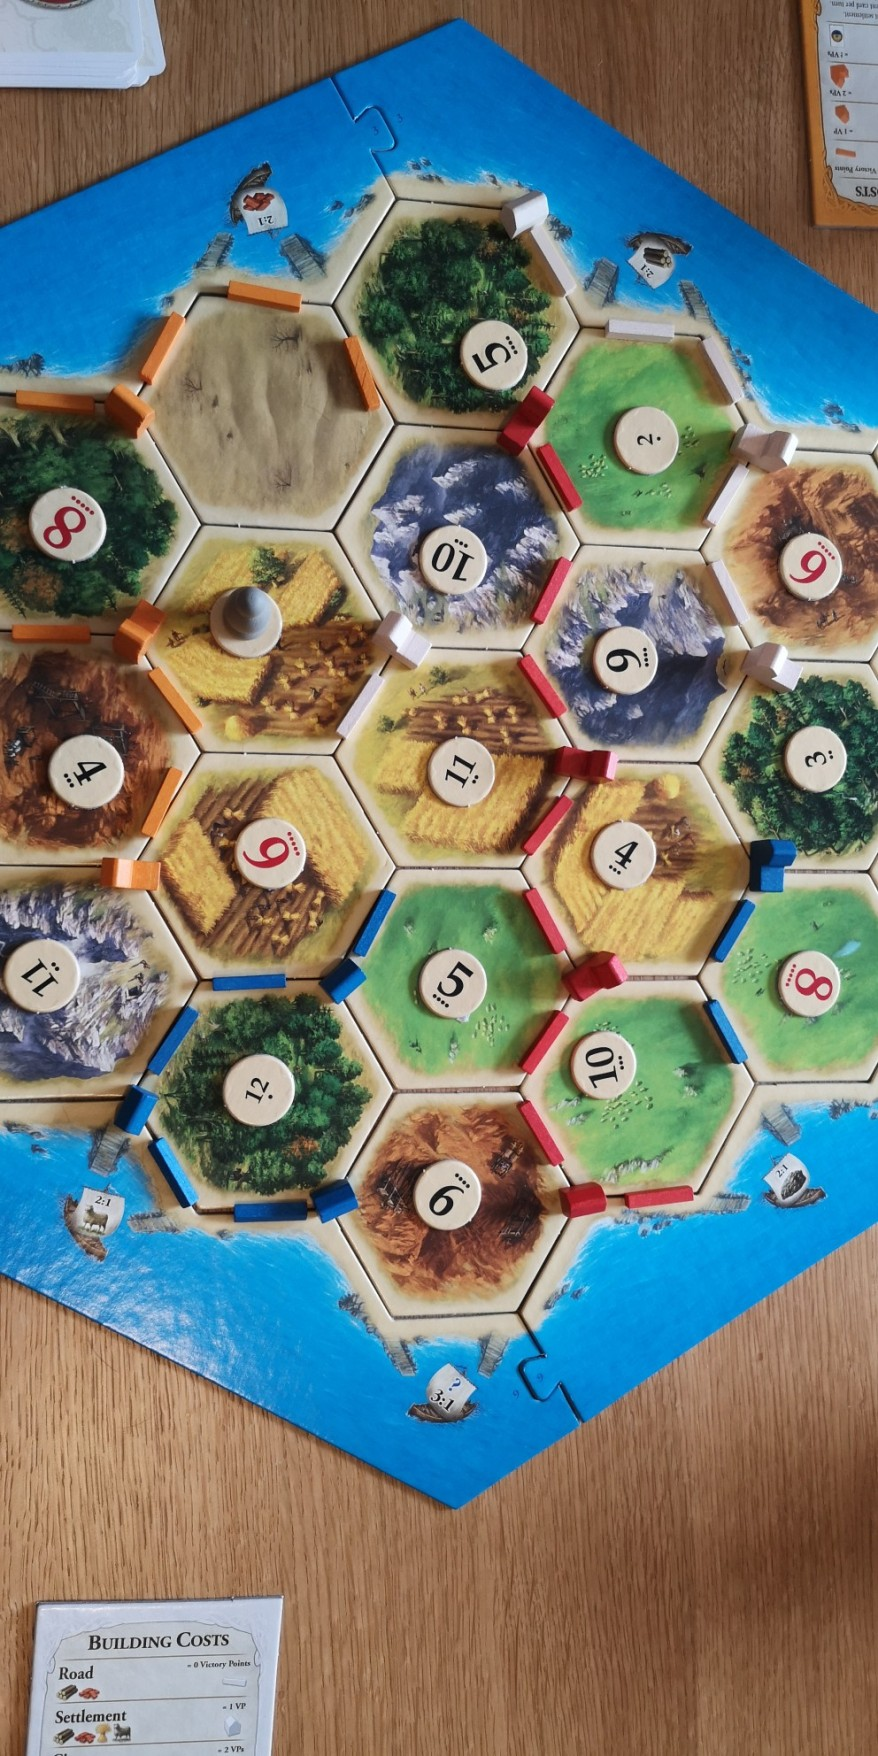 The Catan Board up close